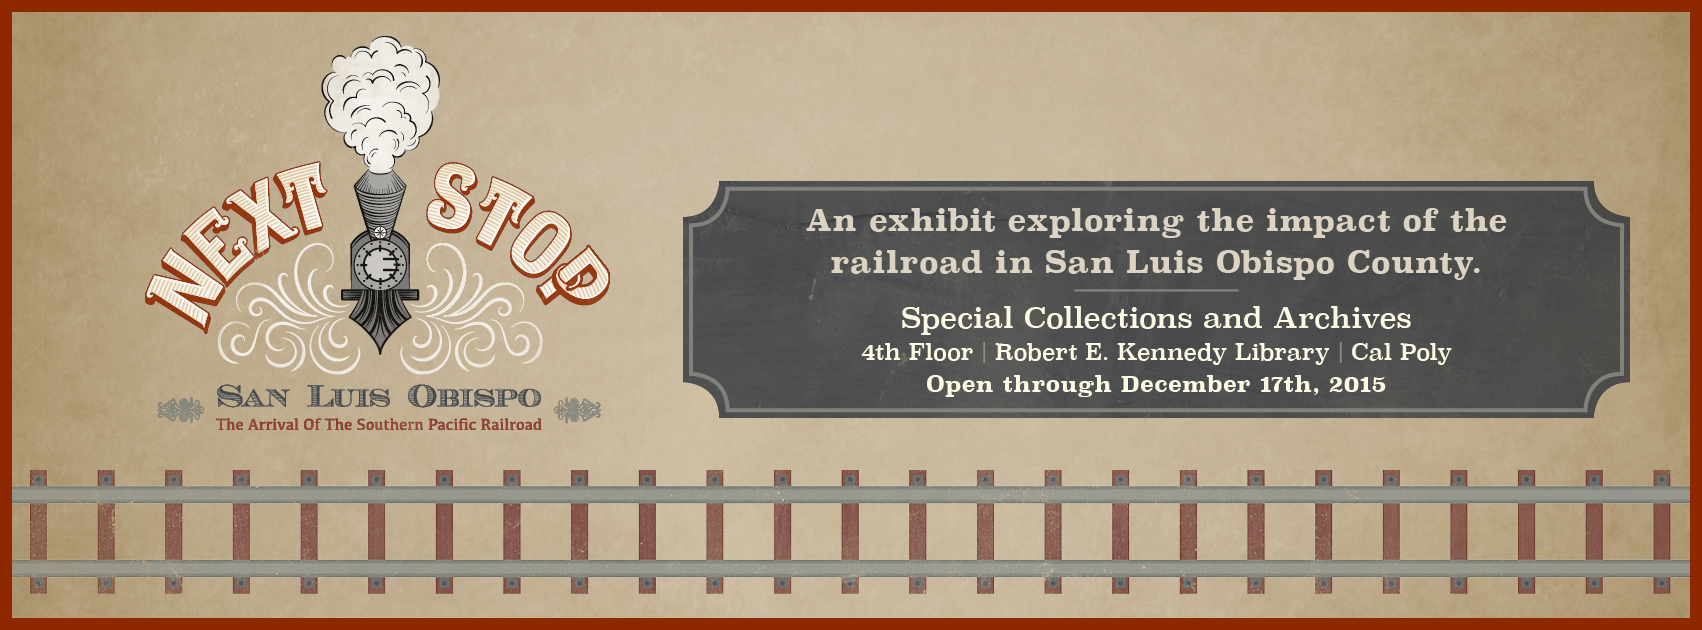 Next Stop: SLO Exhibit in Special Collections and Archives, room 409